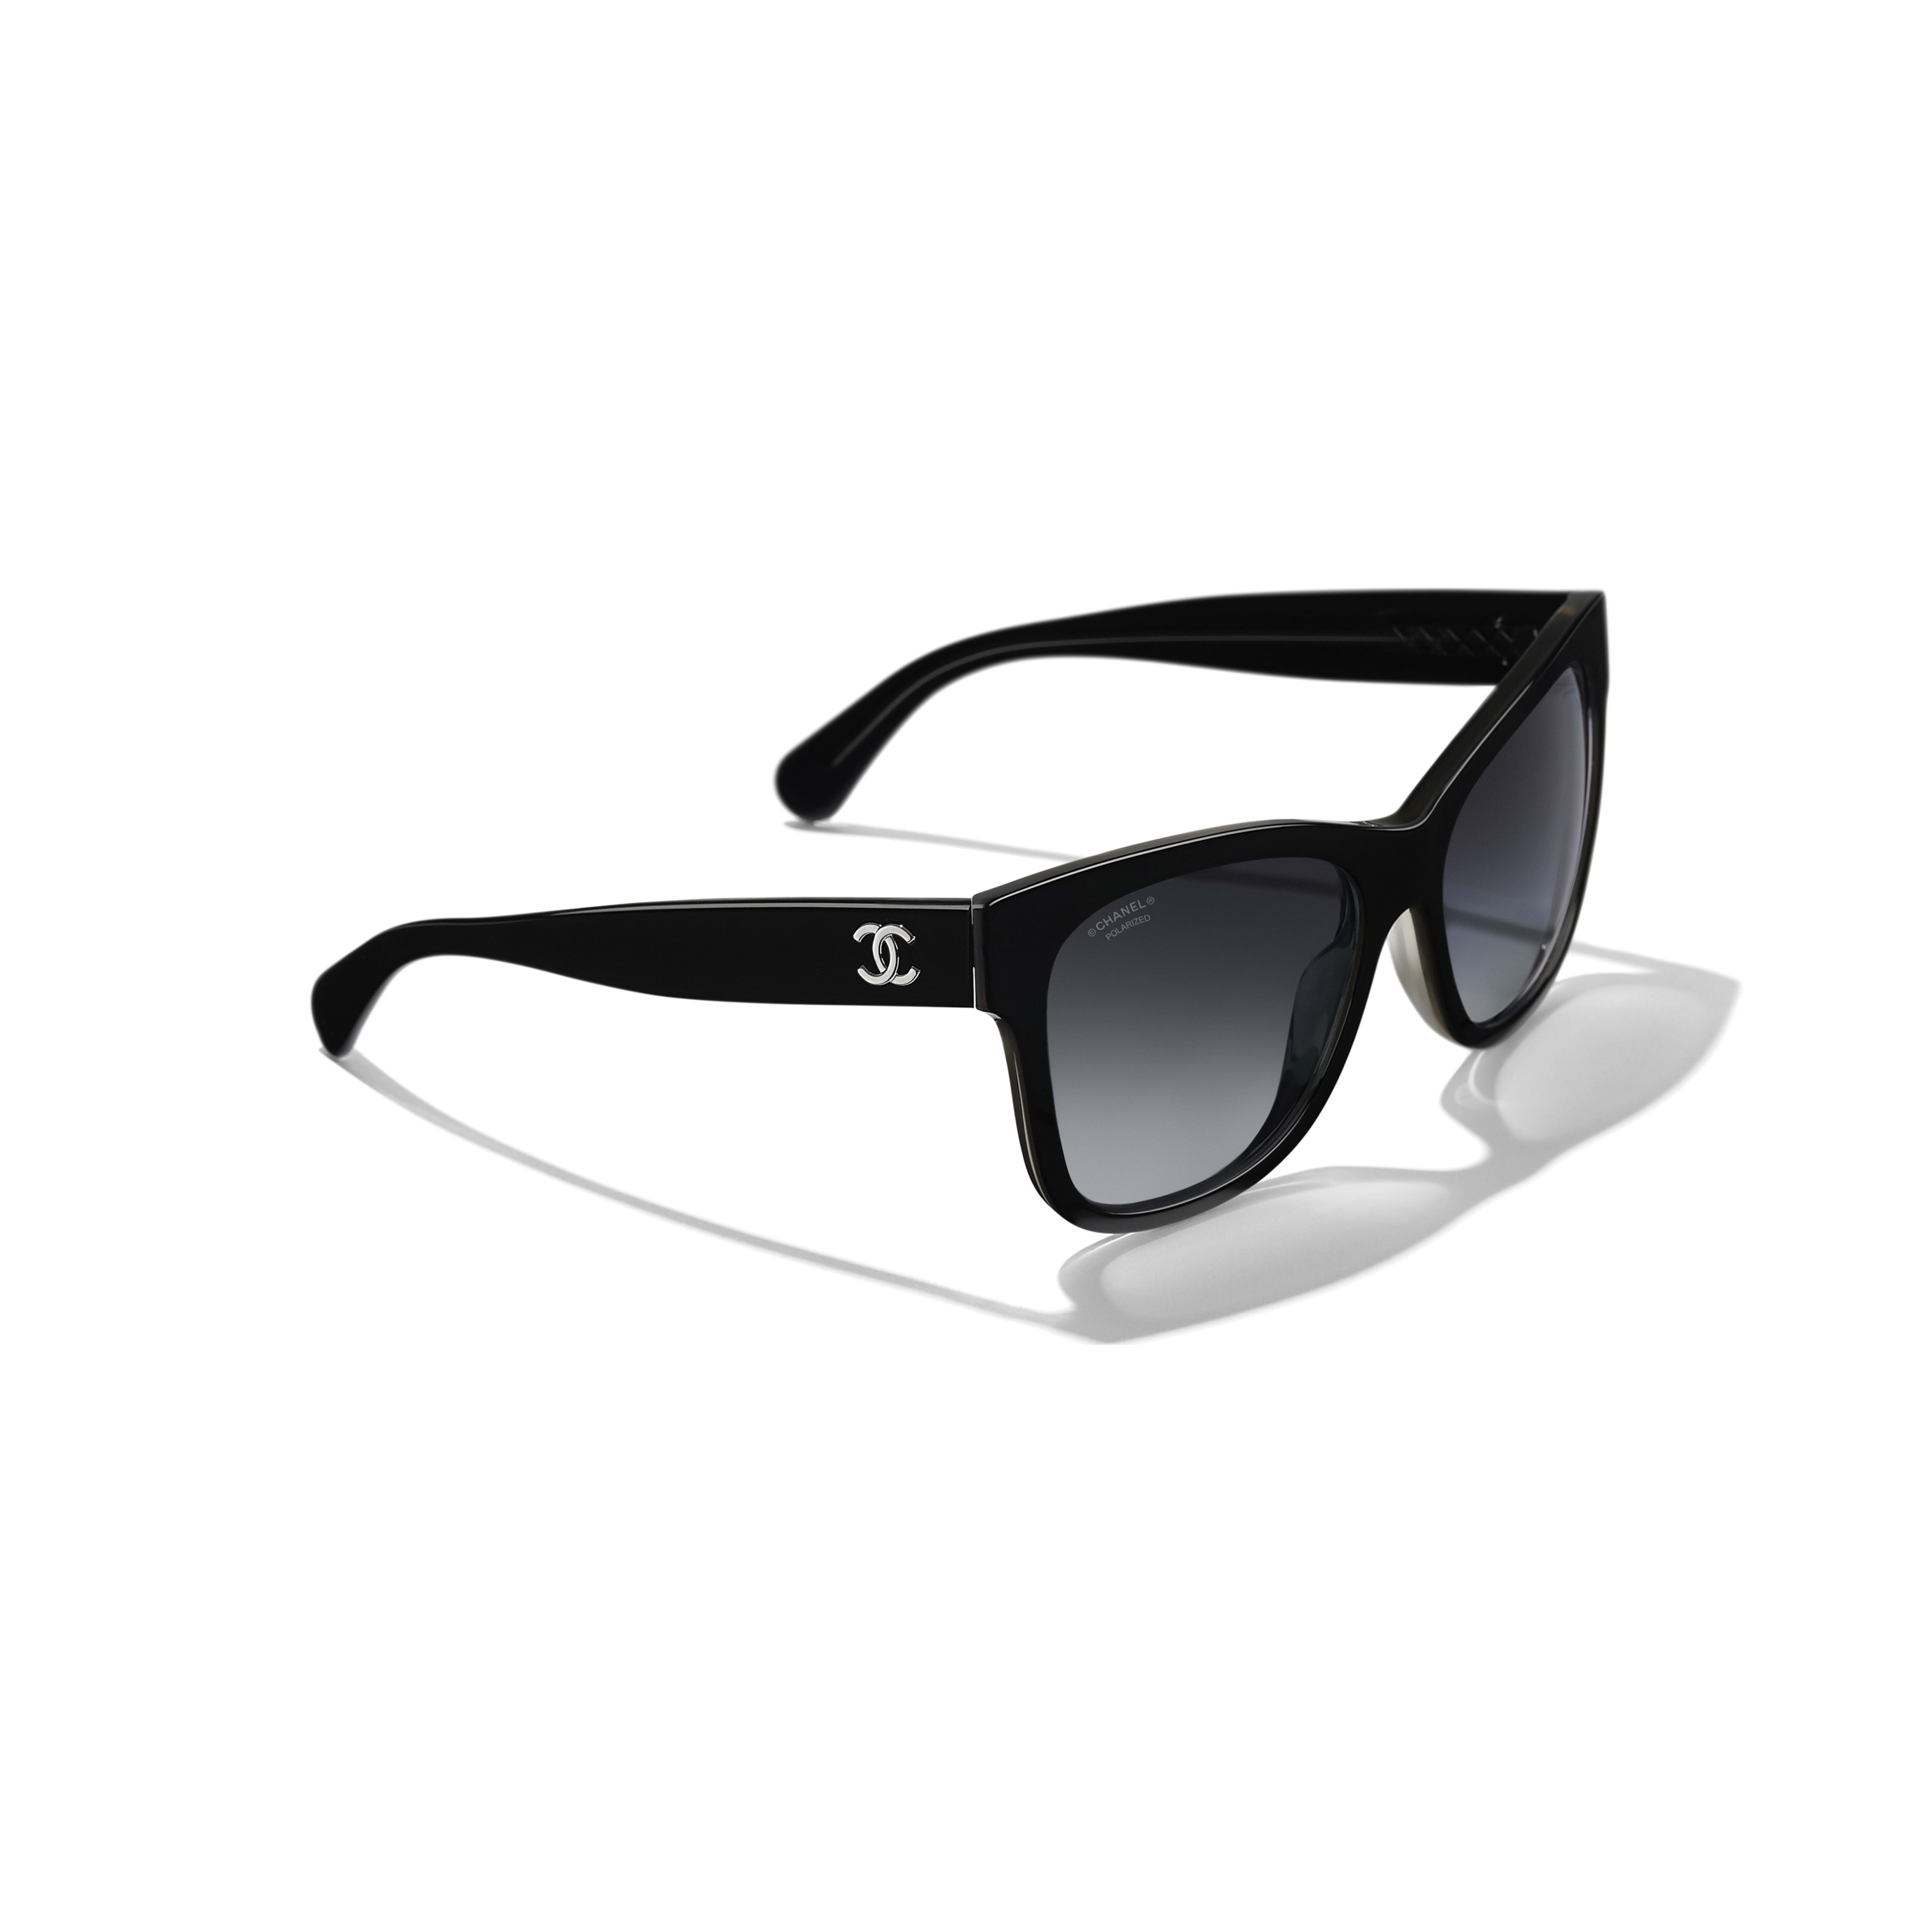 Square Sunglasses - Black - Acetate - Extra view - see full sized version